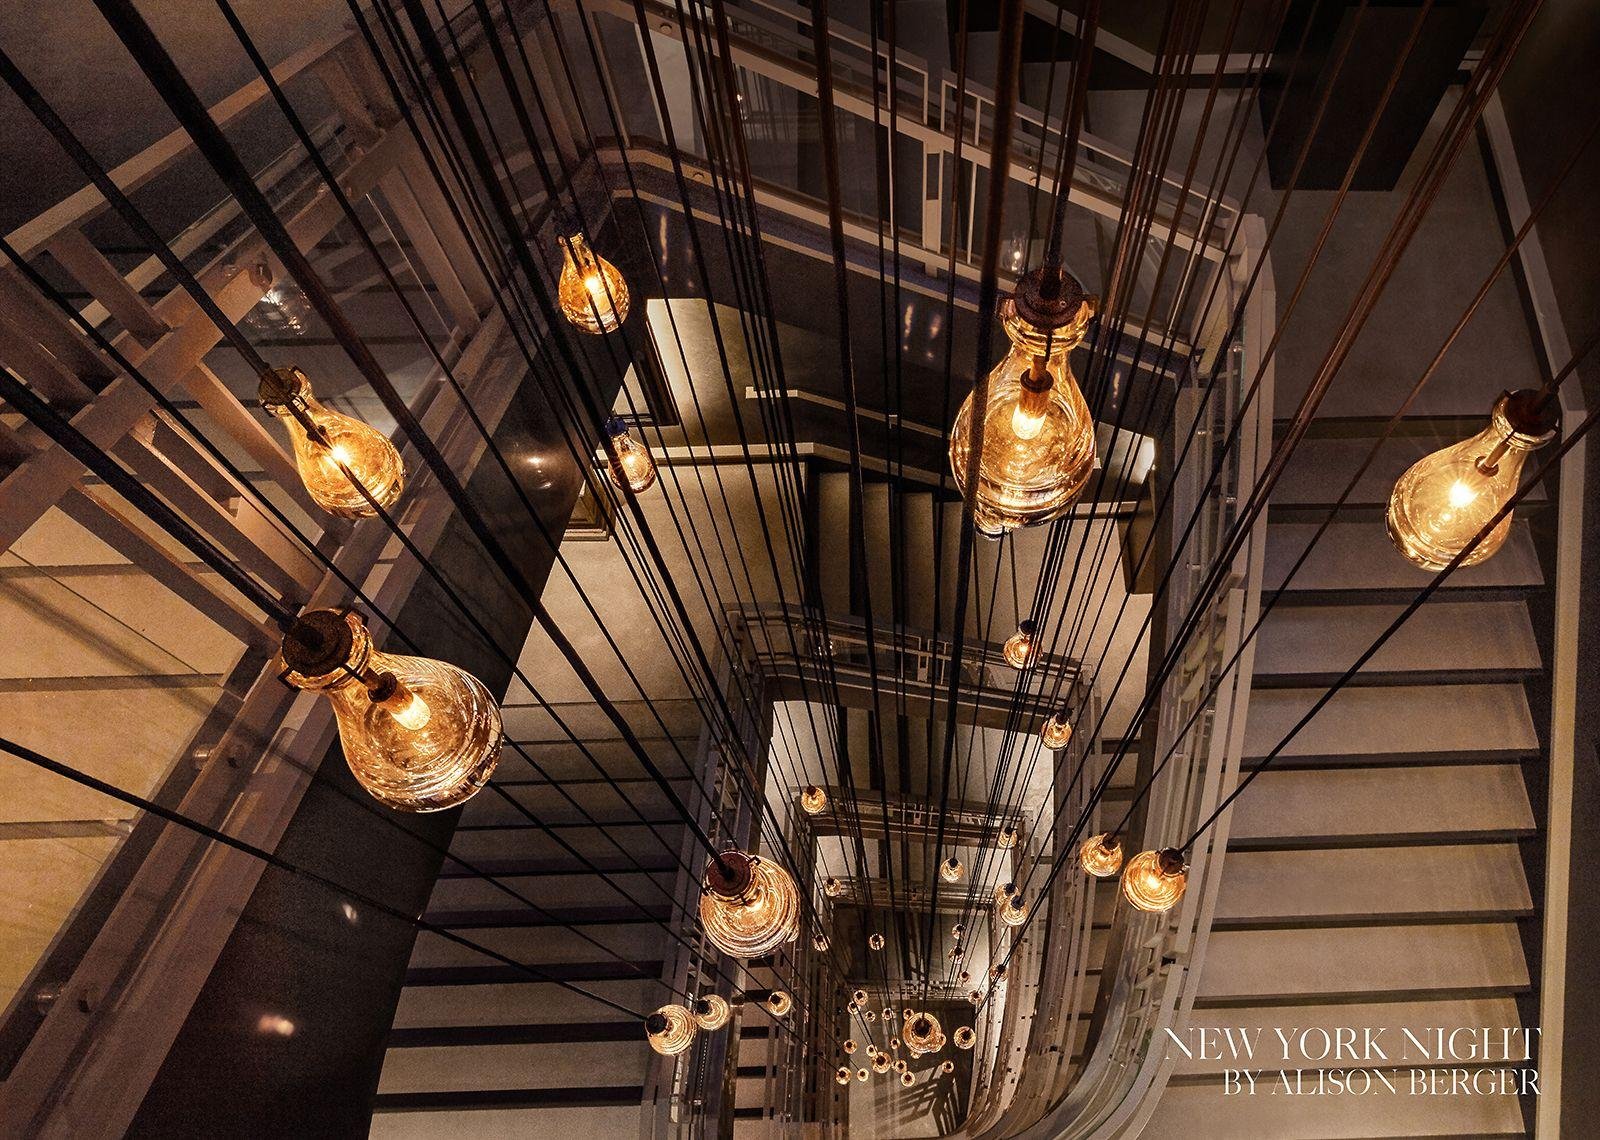 Restoration Hardware Gallery - Meatpacking